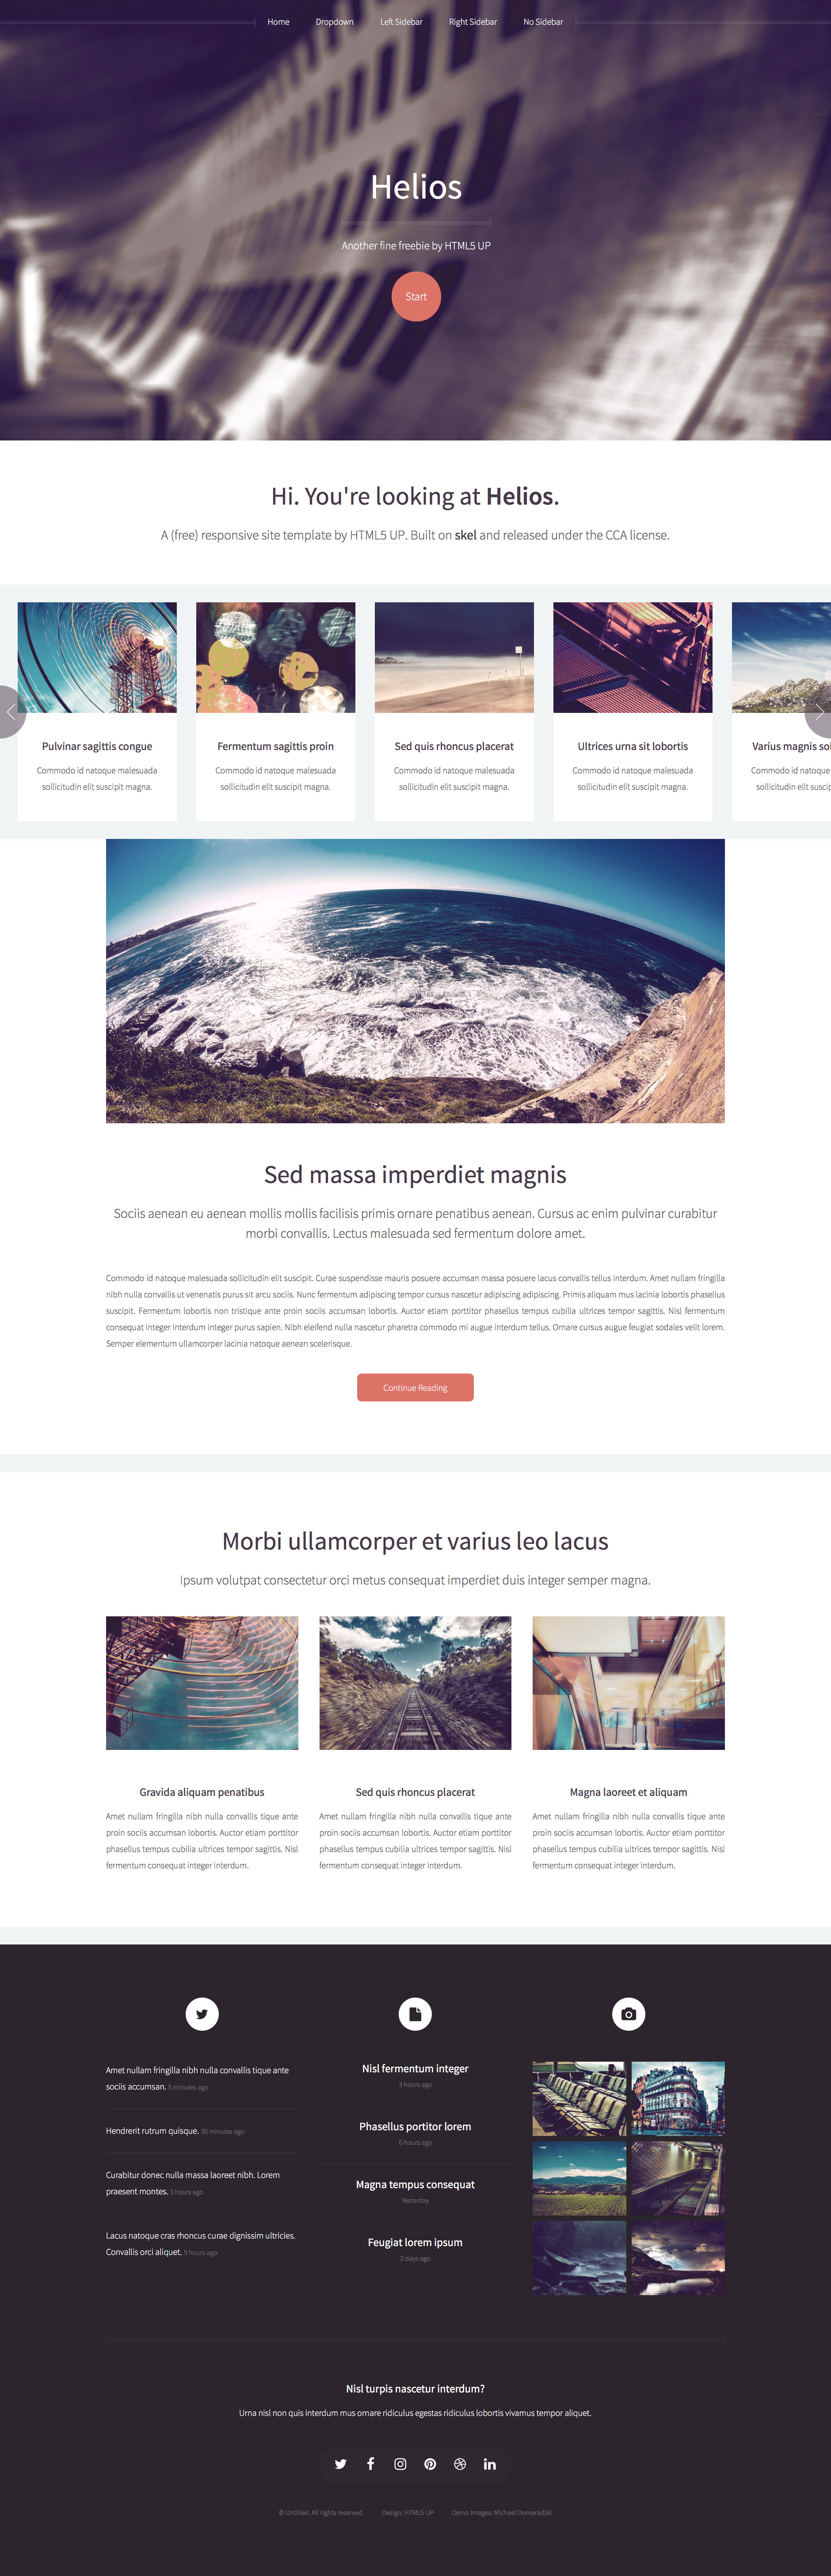 Helios, is a clean, modern and free responsive HTML5 template. It's designed for larger (well, wider) displays. The prefect choice for personal websites.